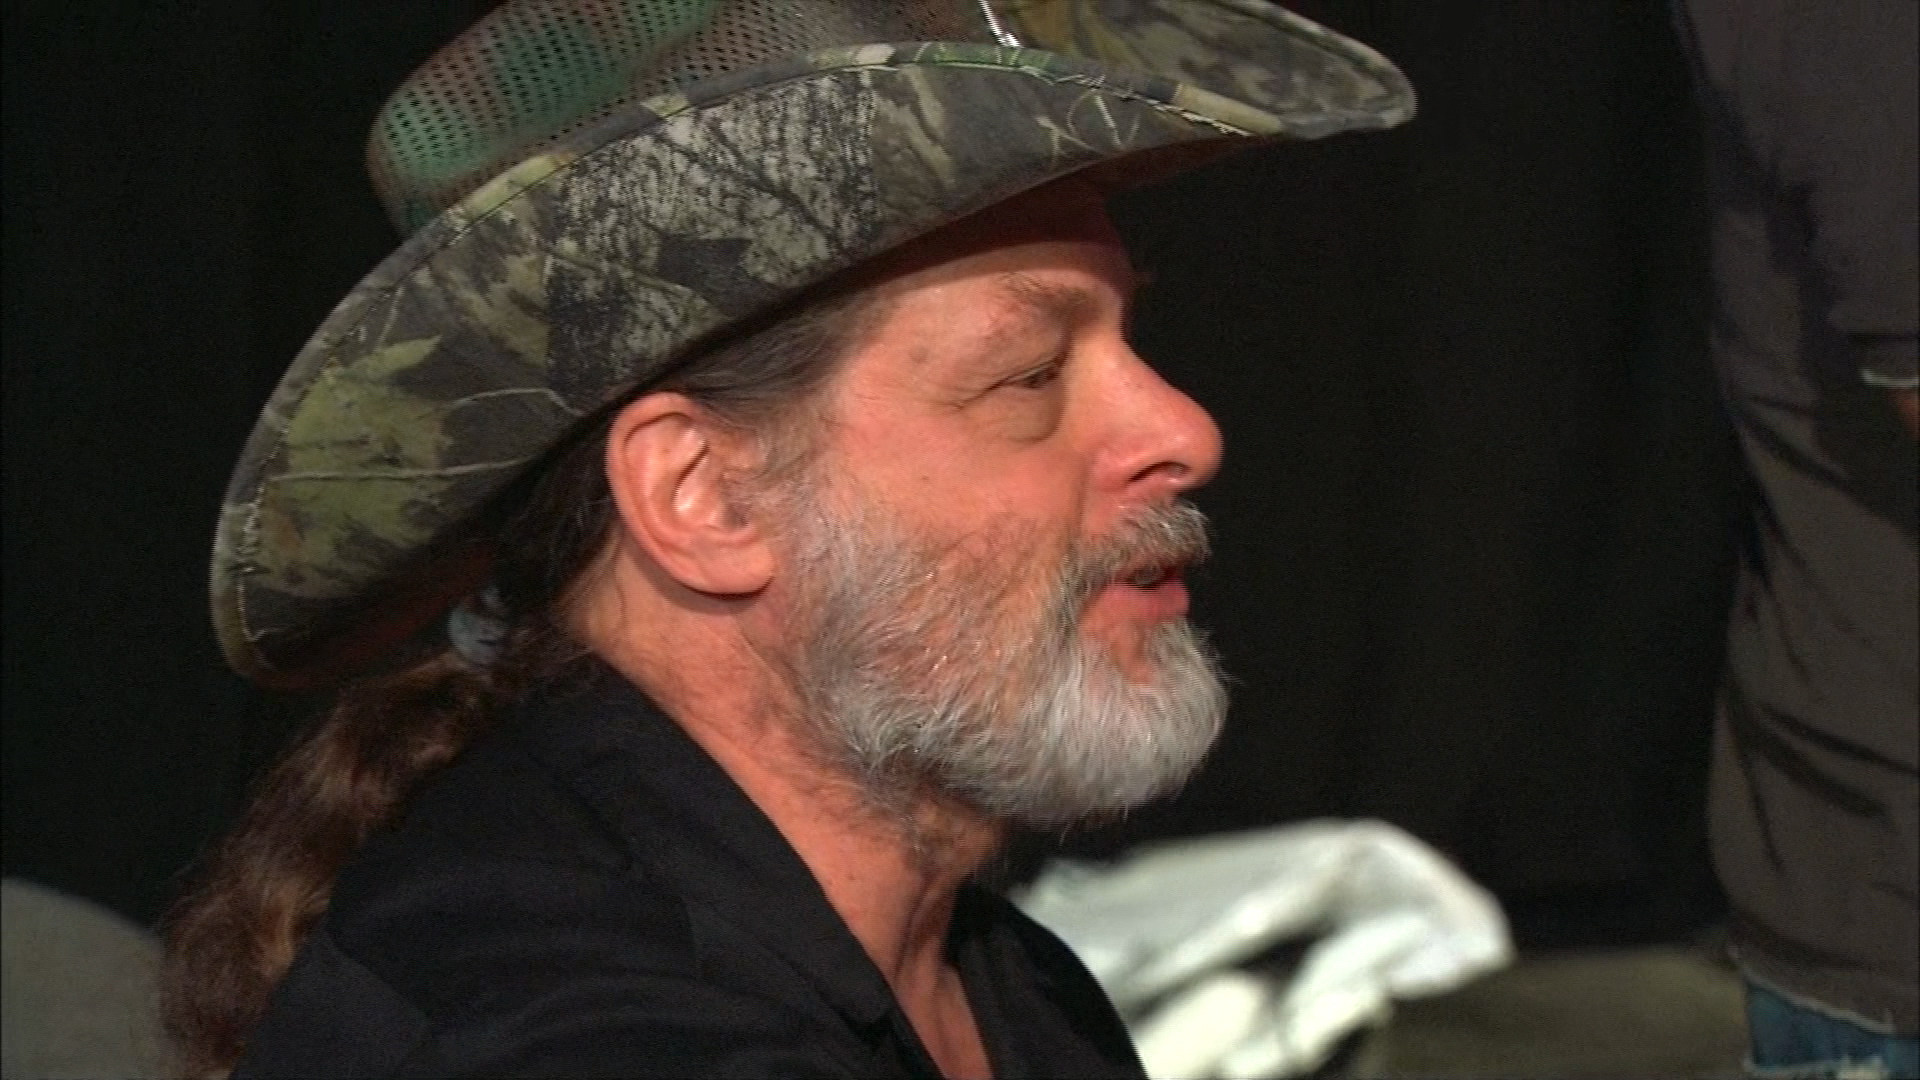 Ted Nugent's racist rant